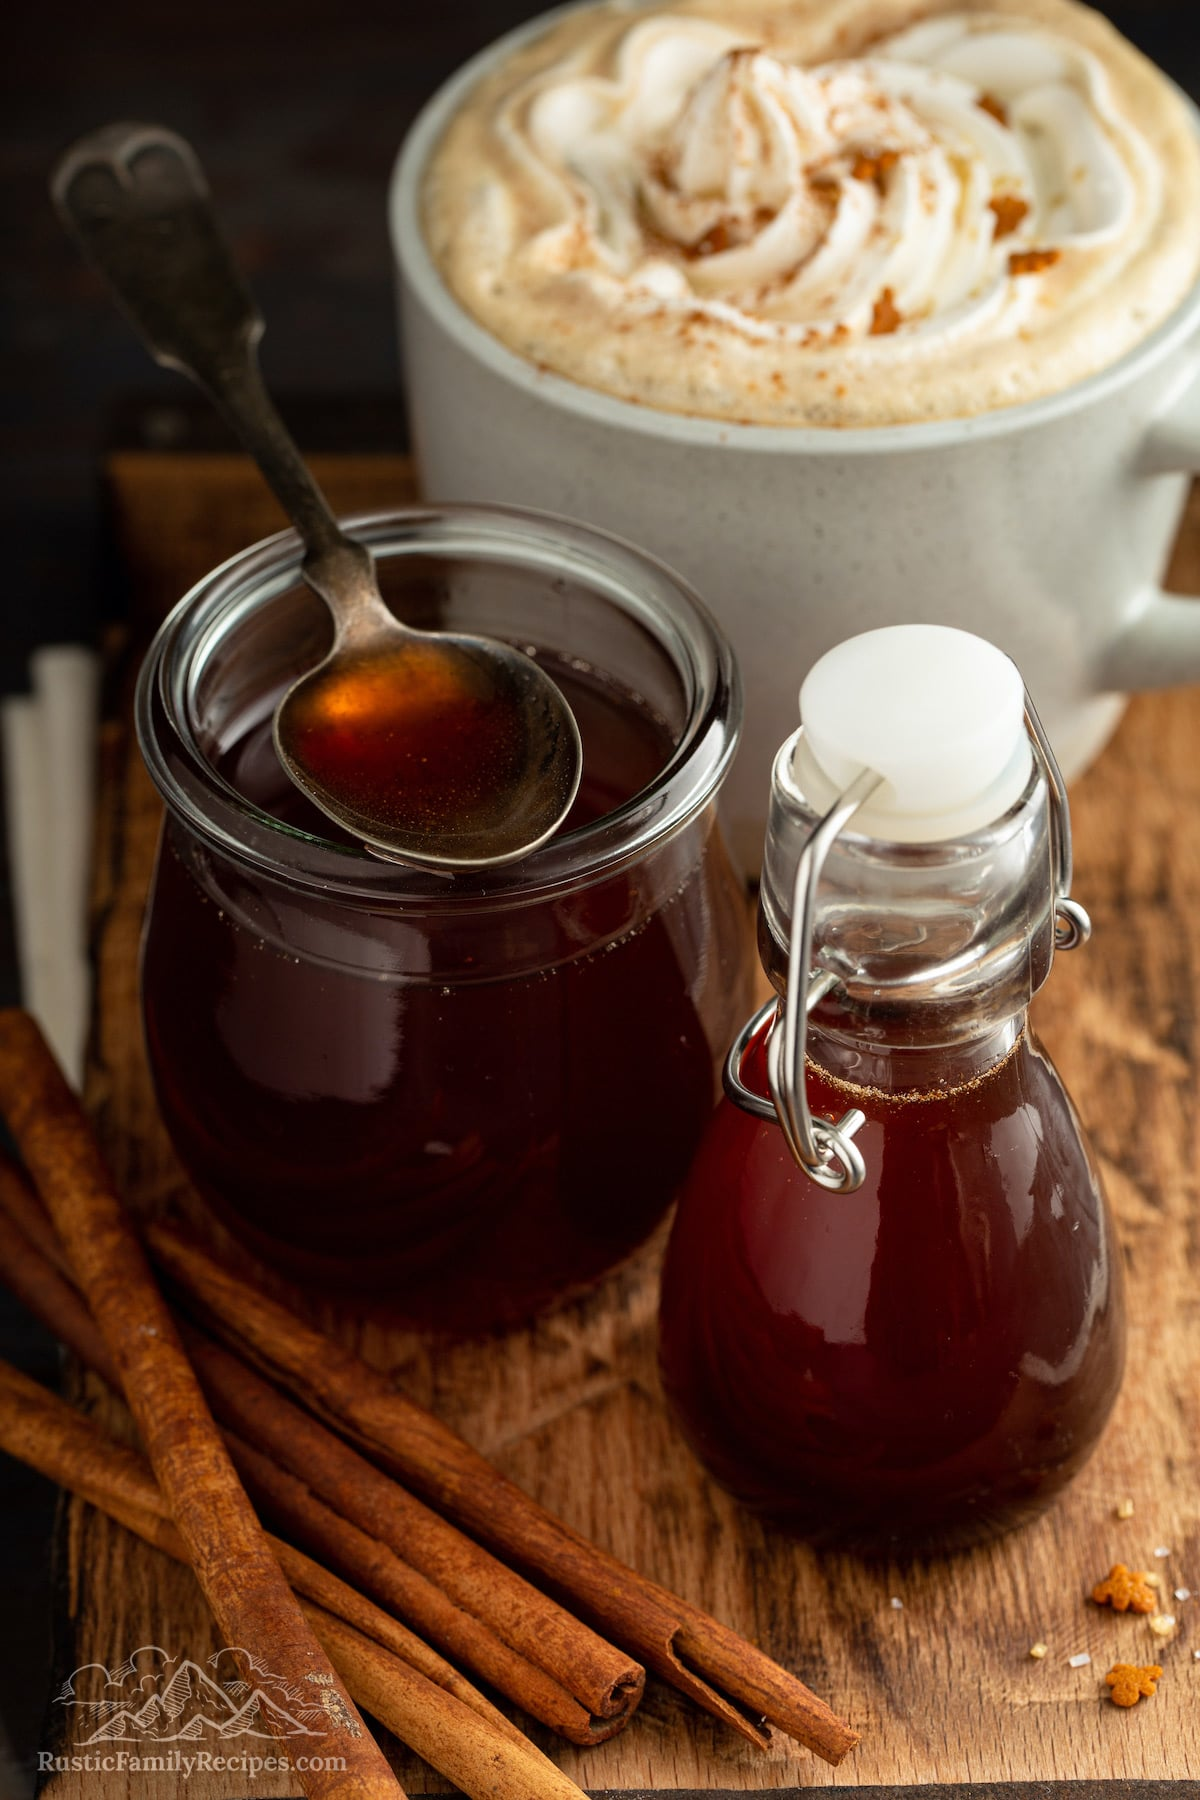 Bottles of homemade gingerbread syrup